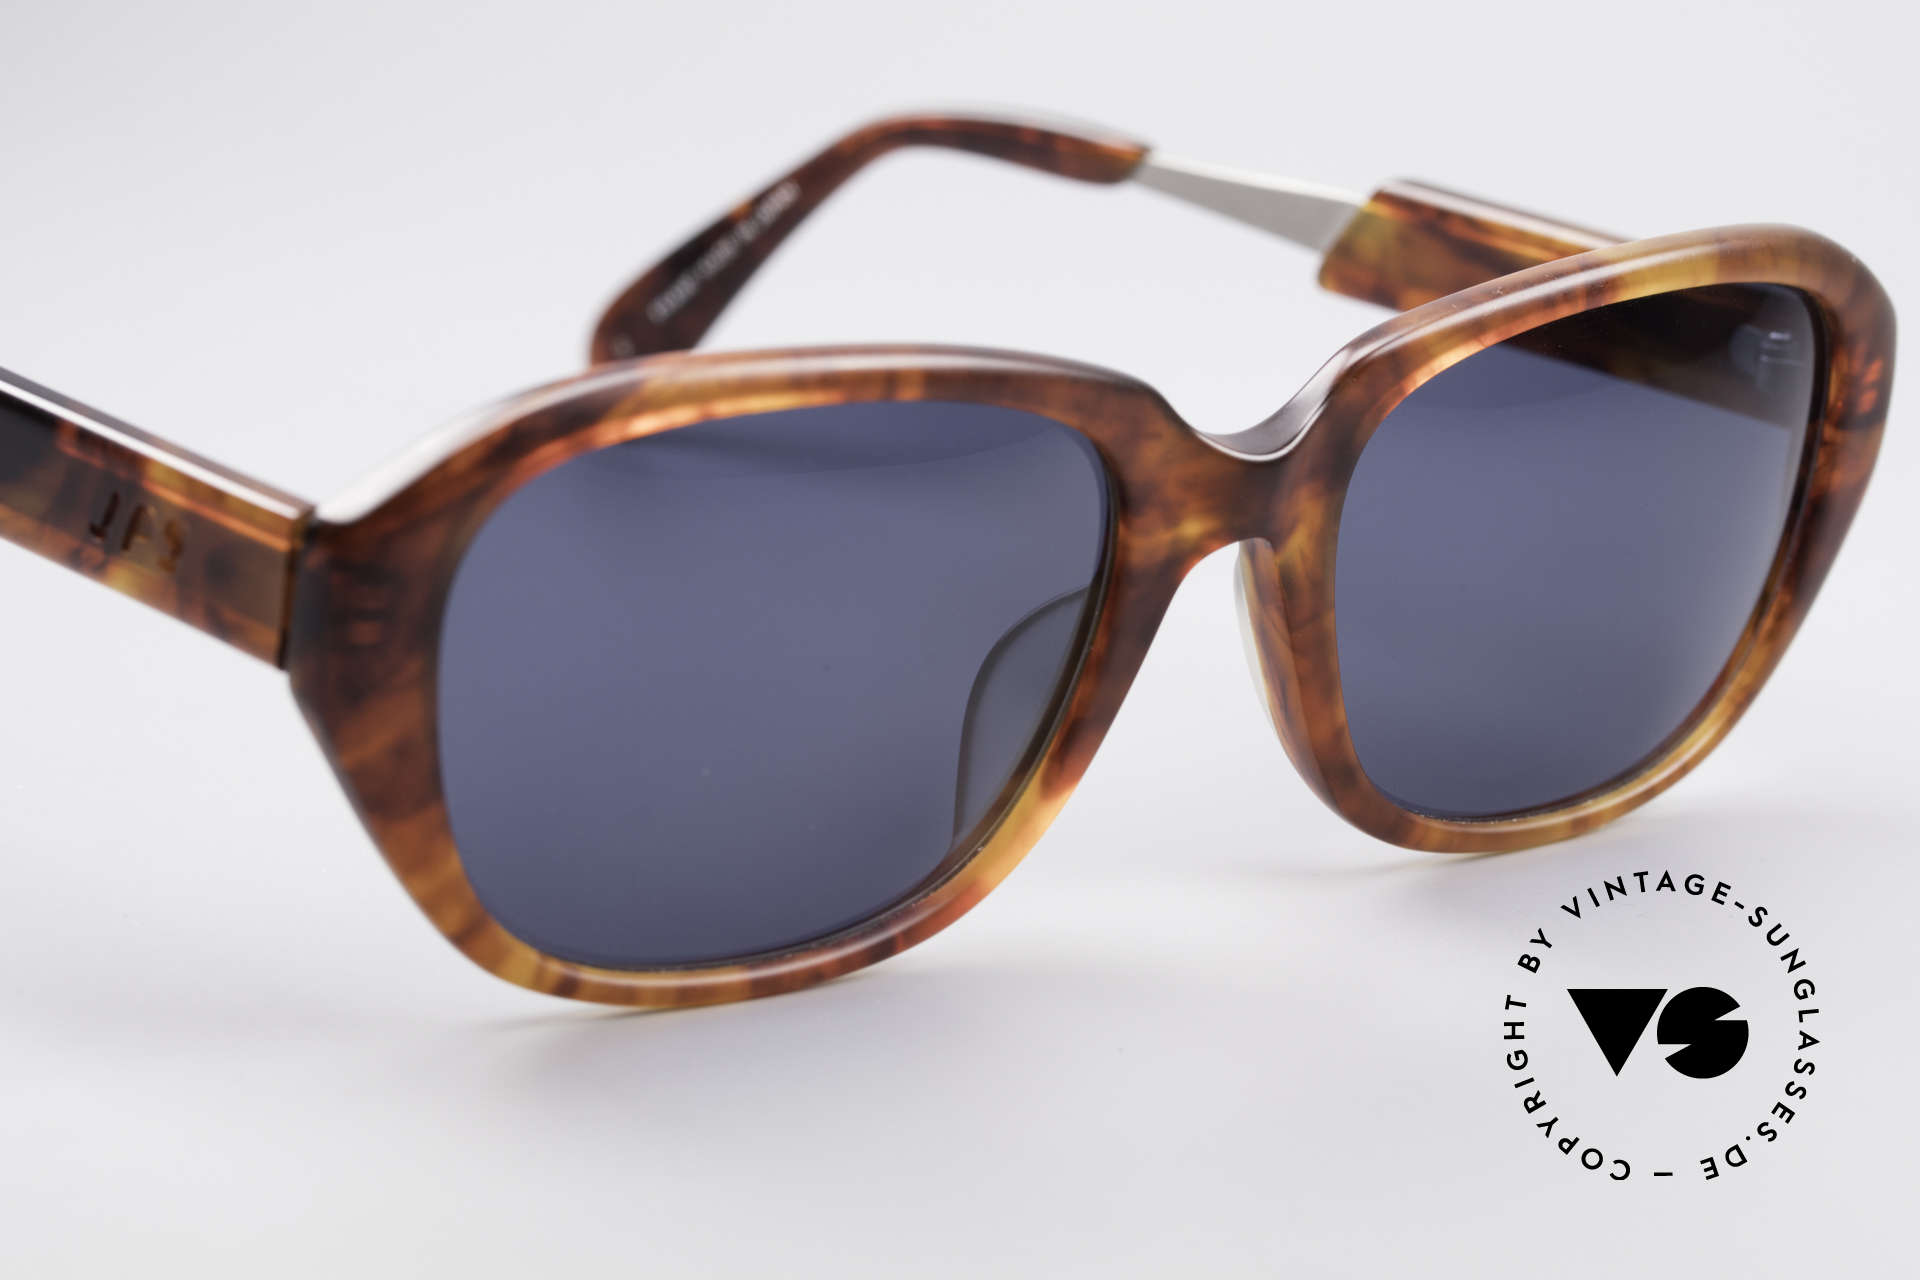 Jean Paul Gaultier 56-1072 JPG Designer Sunglasses, NO RETRO shades, but a rare ORIGINAL from 1995/96, Made for Men and Women